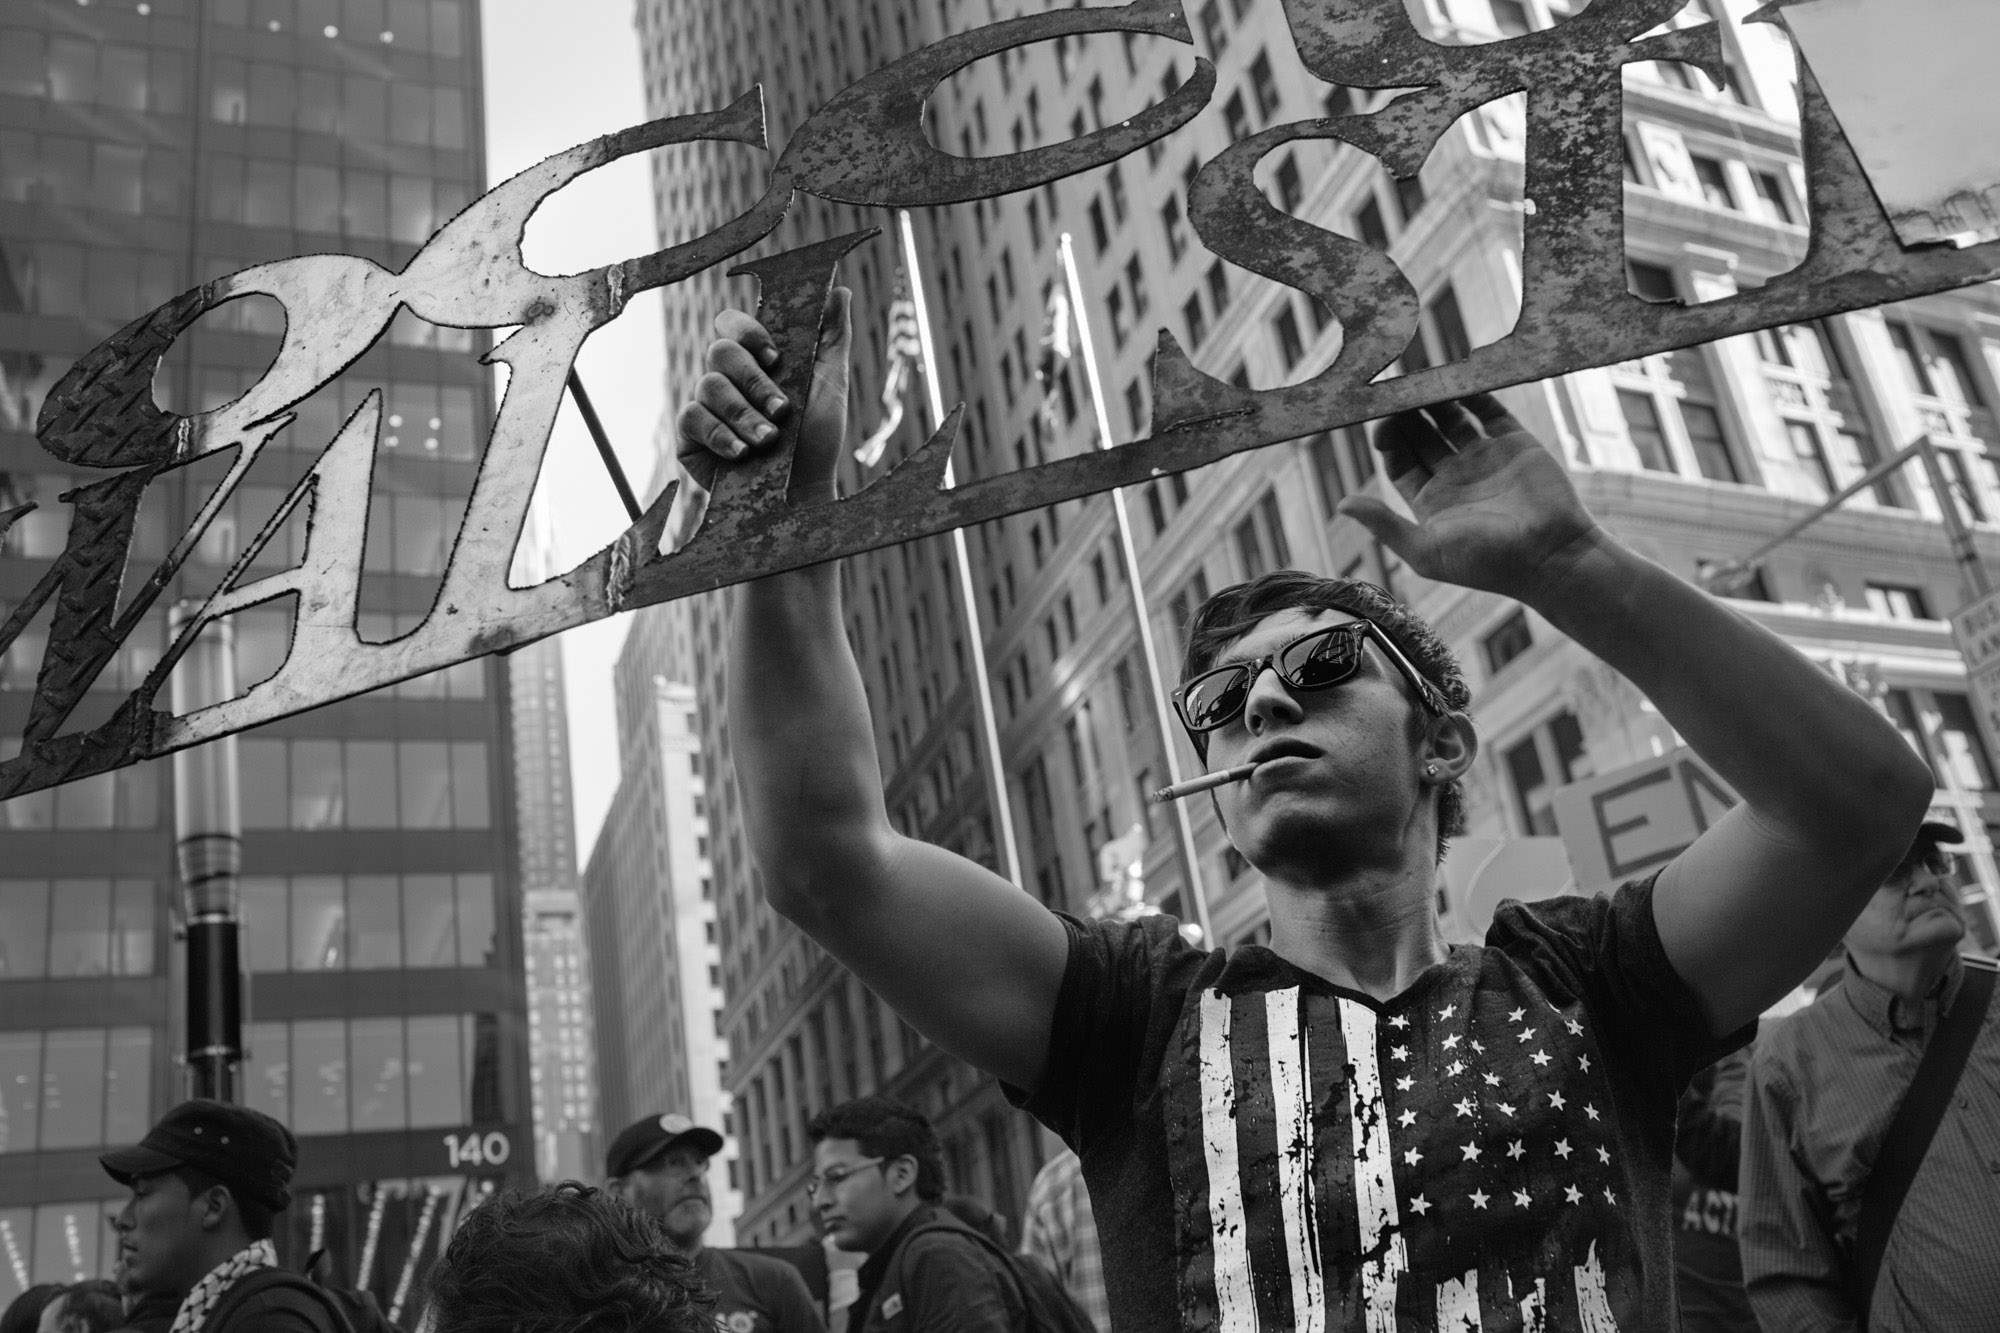 An OWS protestor holds an Occupy Wall Street sign cut from metal.